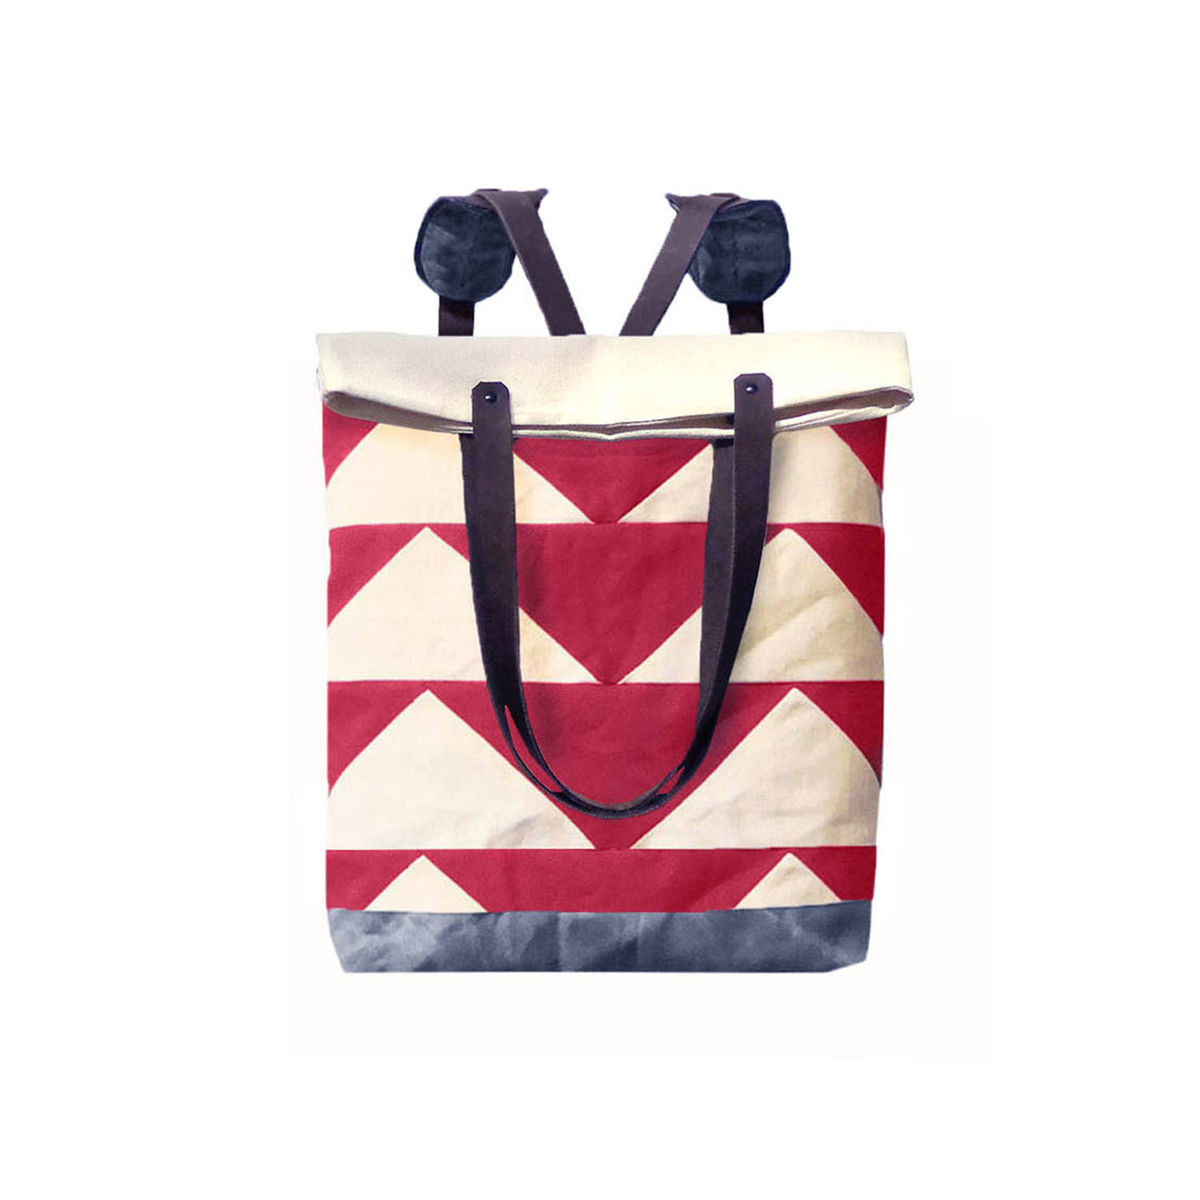 Convertible Tote, Backpack w/ Leather Straps - Bunting Triangle Red - product images  of